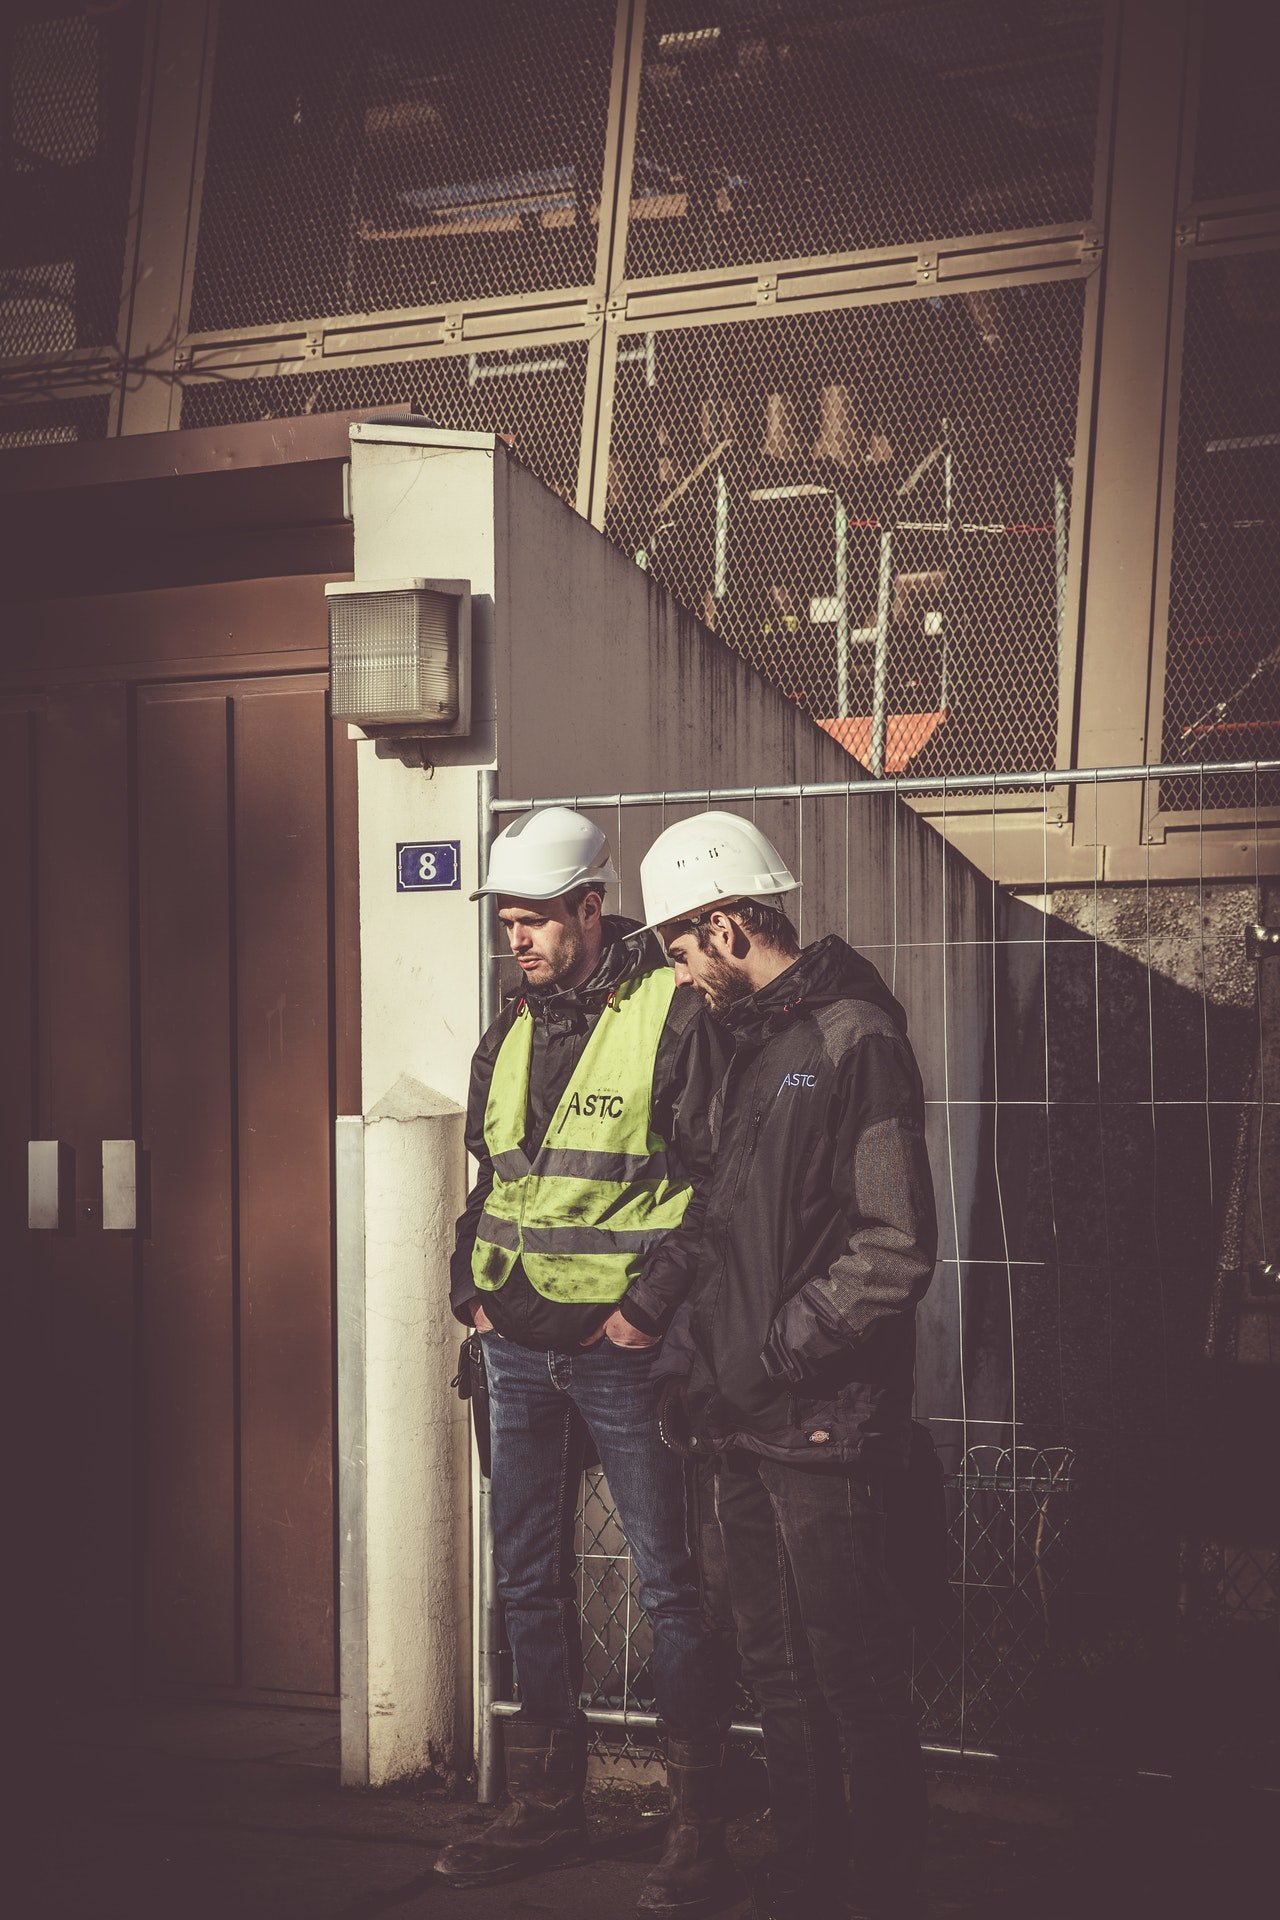 Two construction workers having a discussion   Photo: Pexels